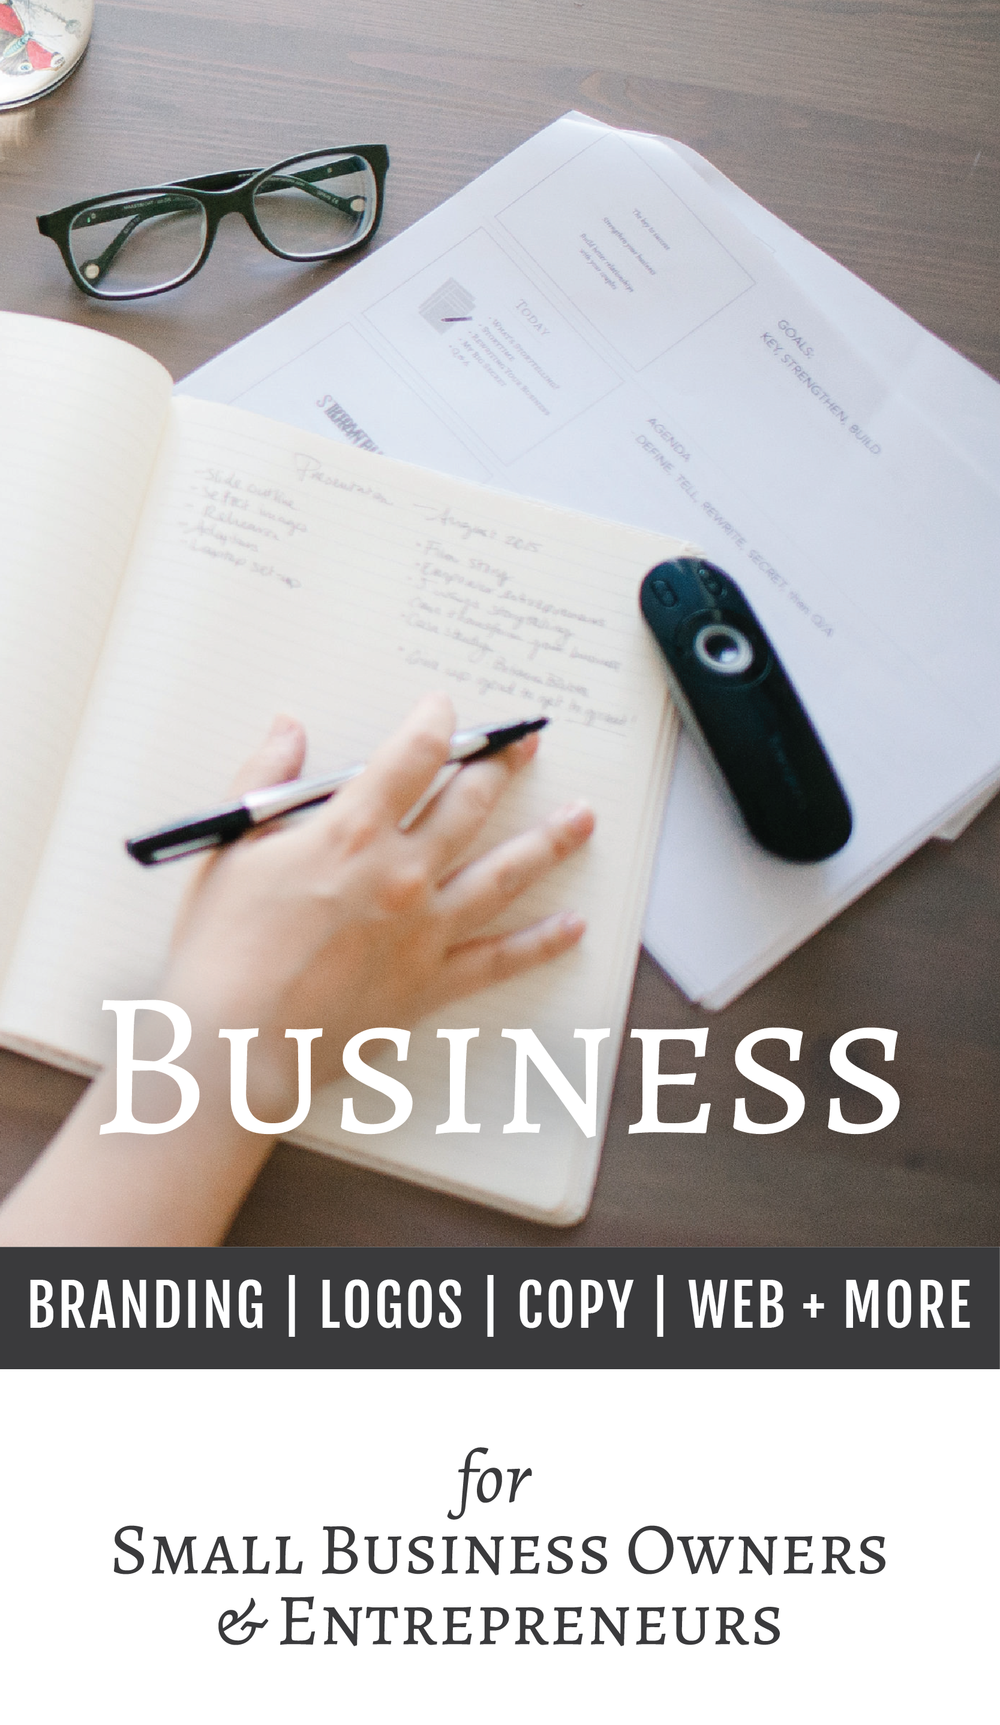 Greatest Story Creative for Your Business: Branding, Logos, Copywriting, Websites, and More for Small Business Owners and Entrepreneurs